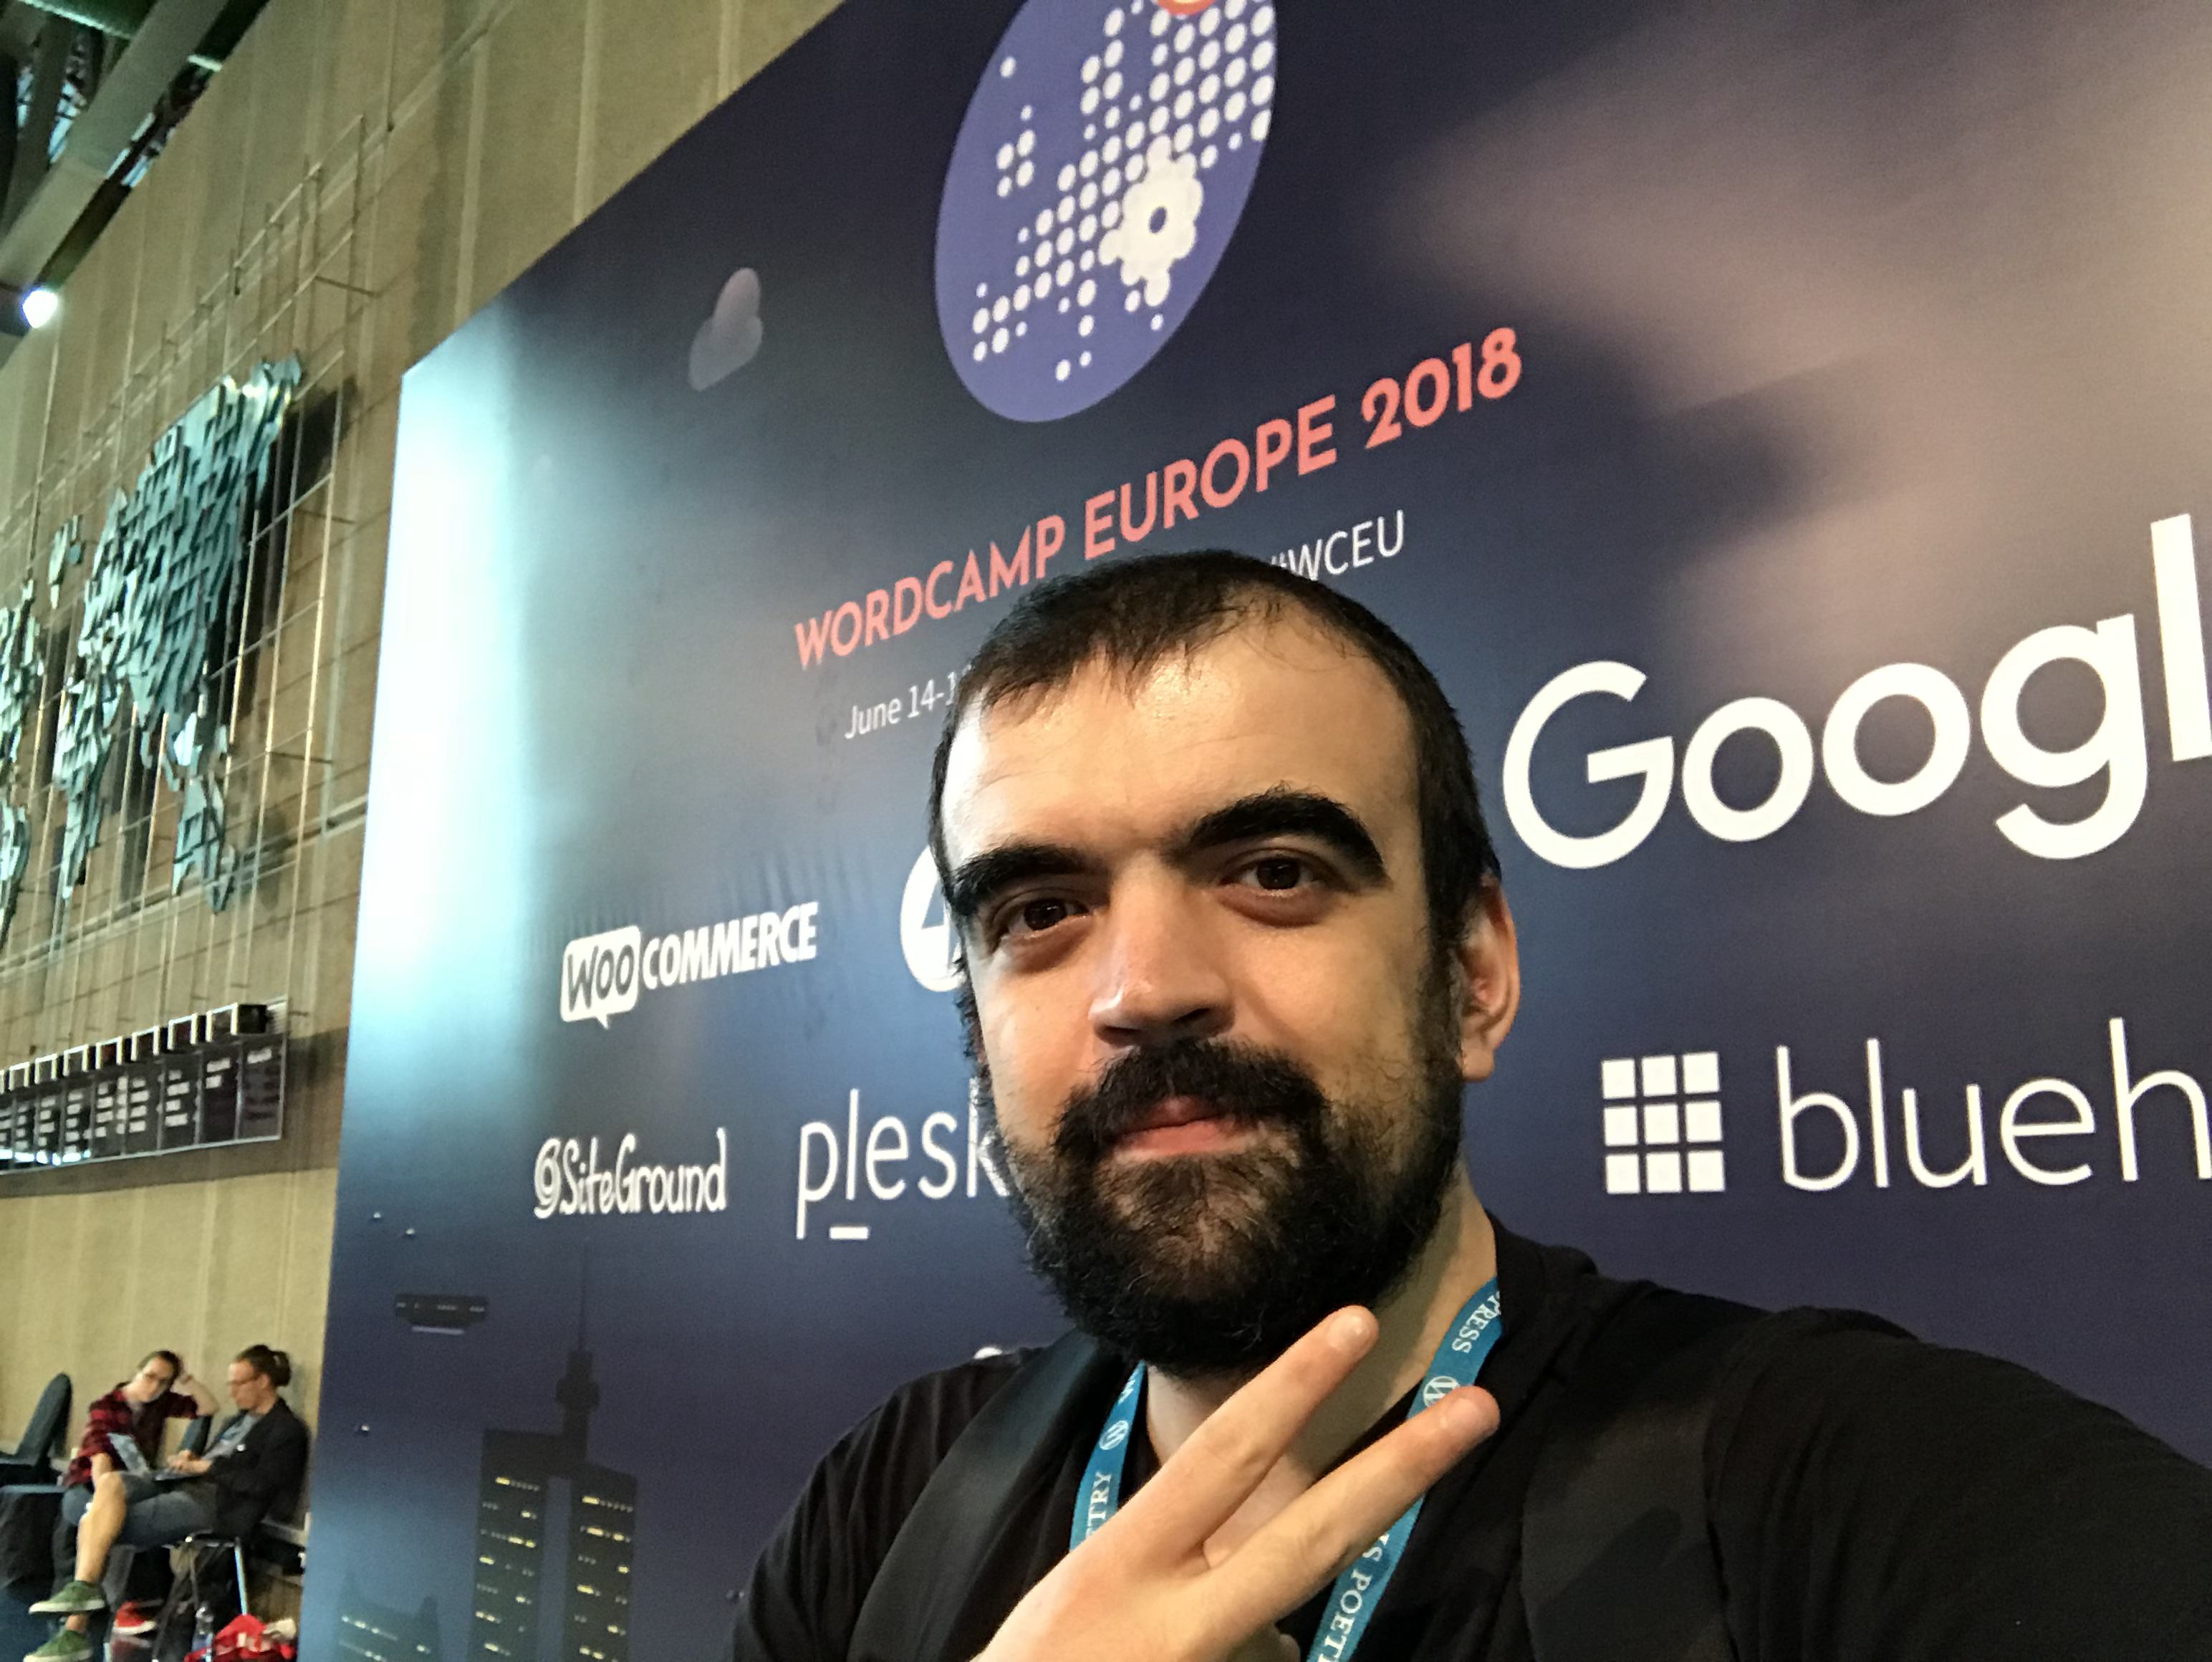 IQUII - WordCamp Europe 2018